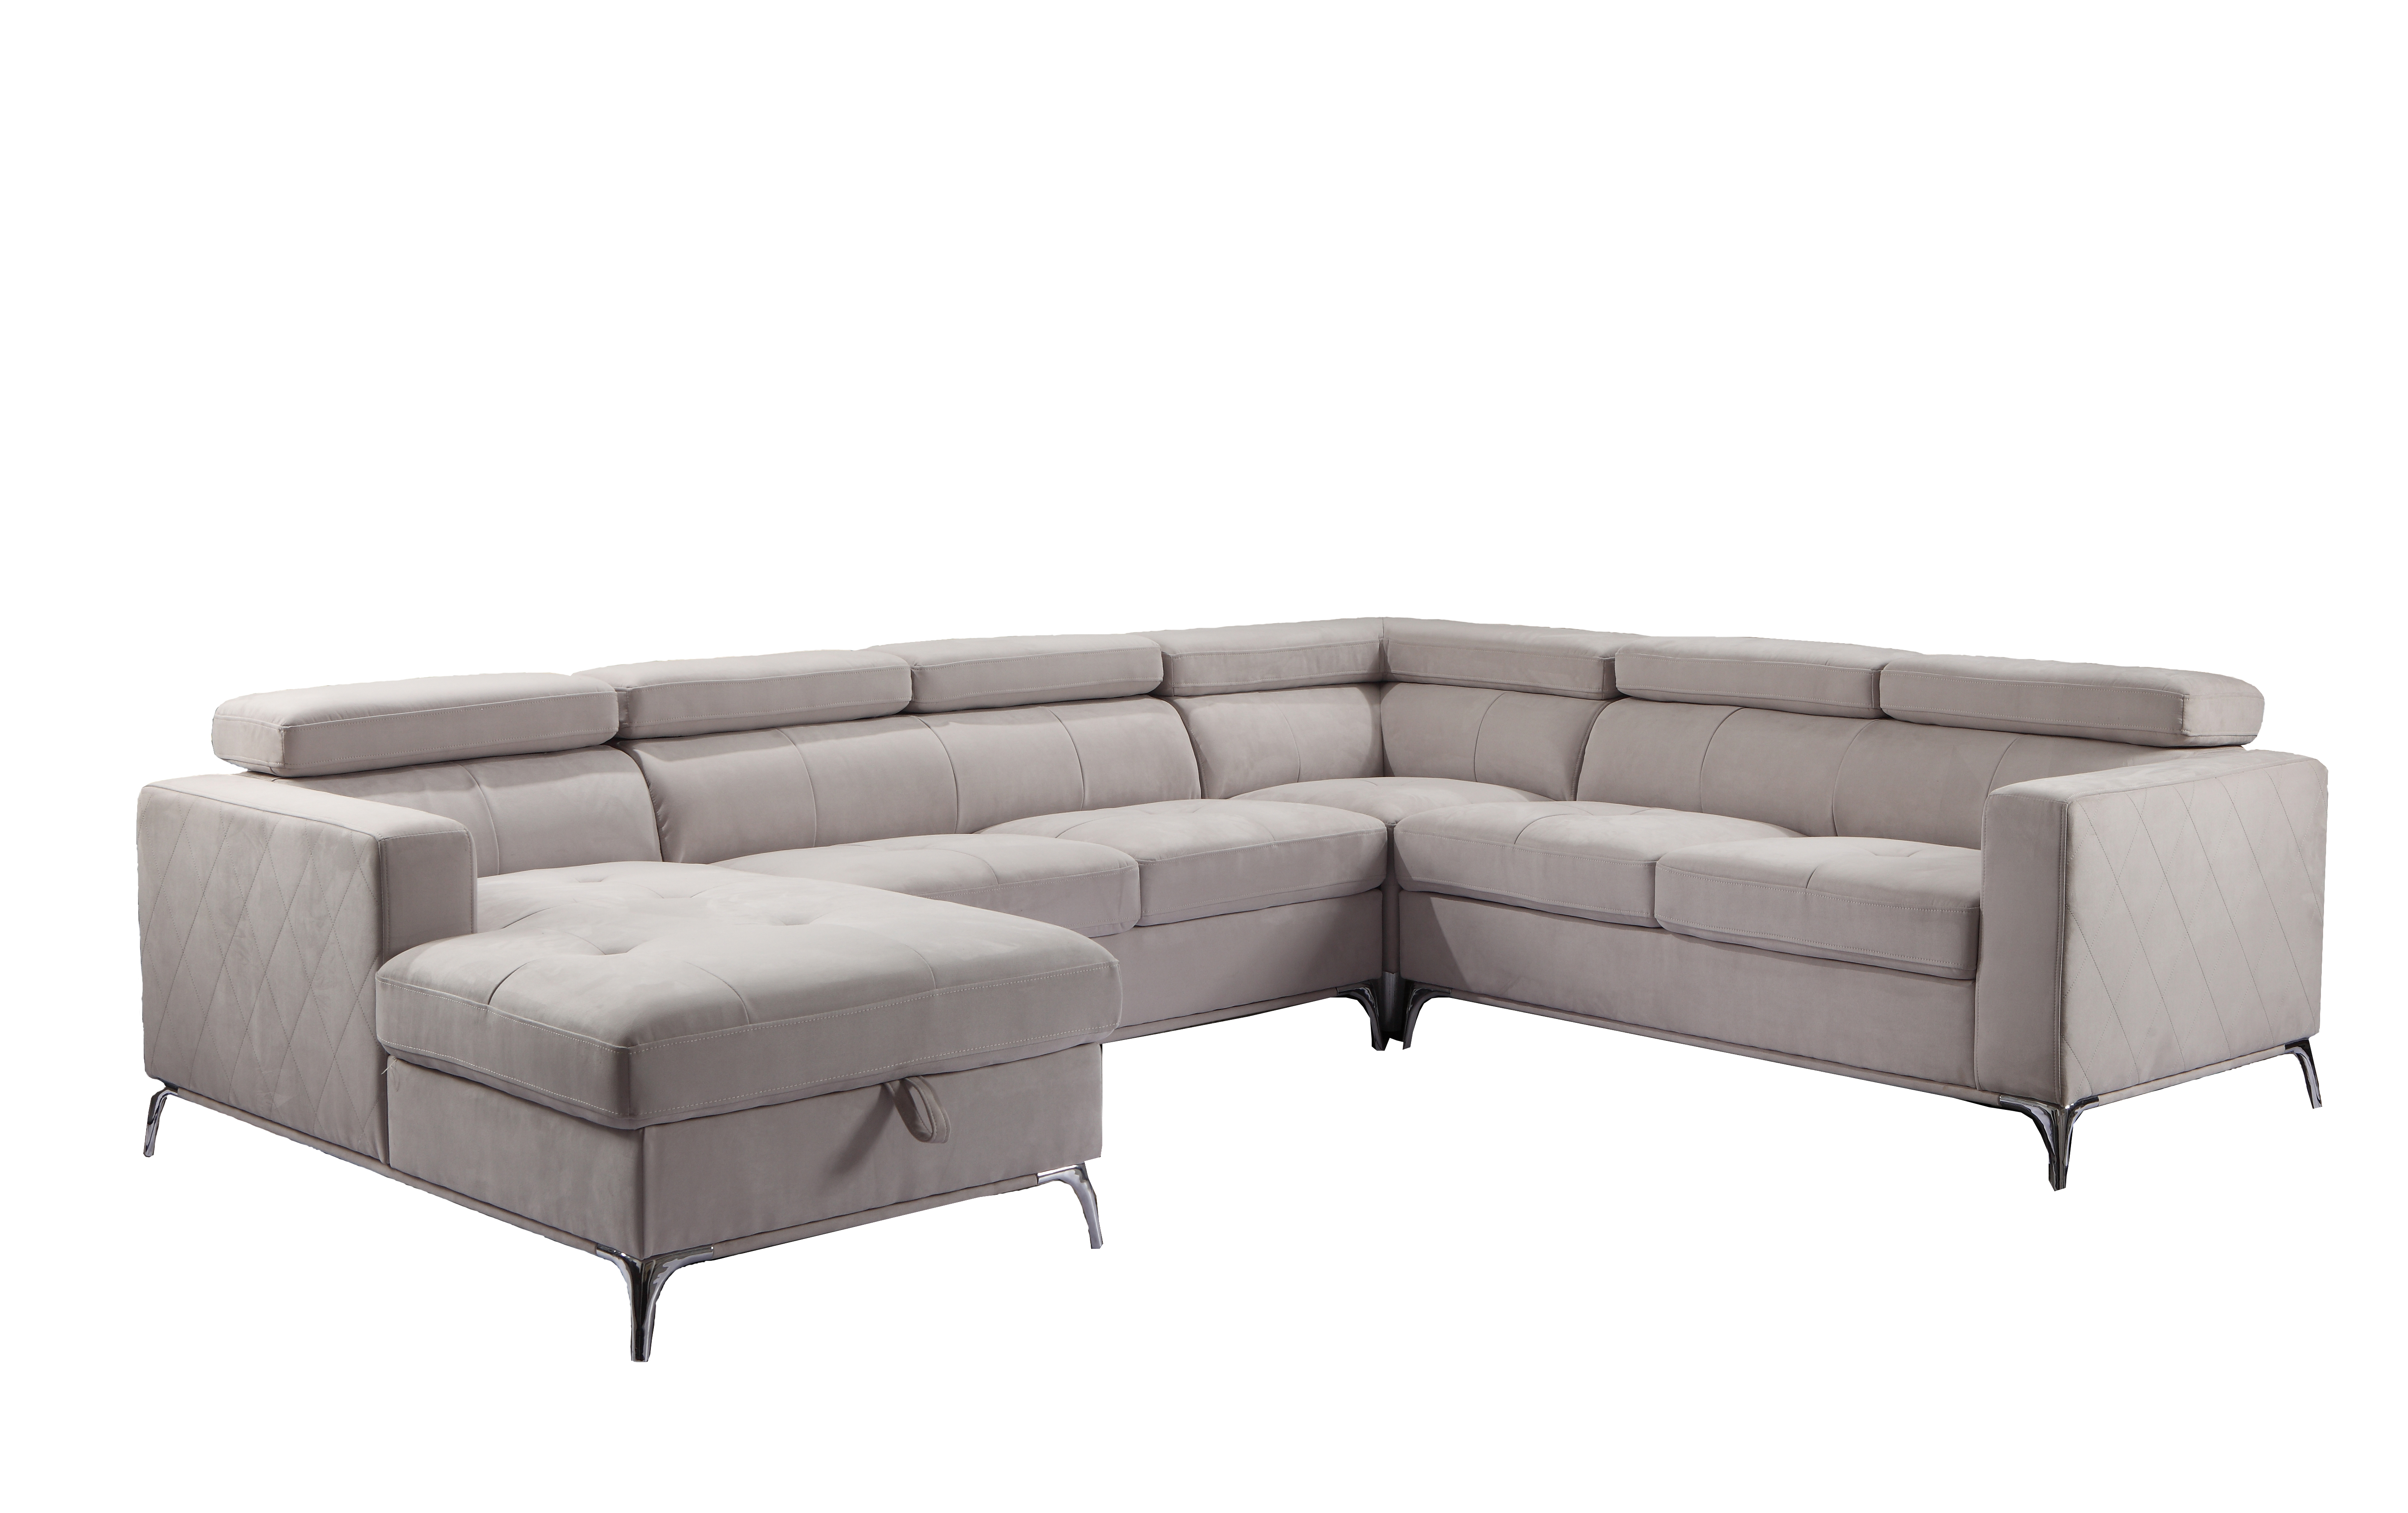 Conner & Chaise Lounge